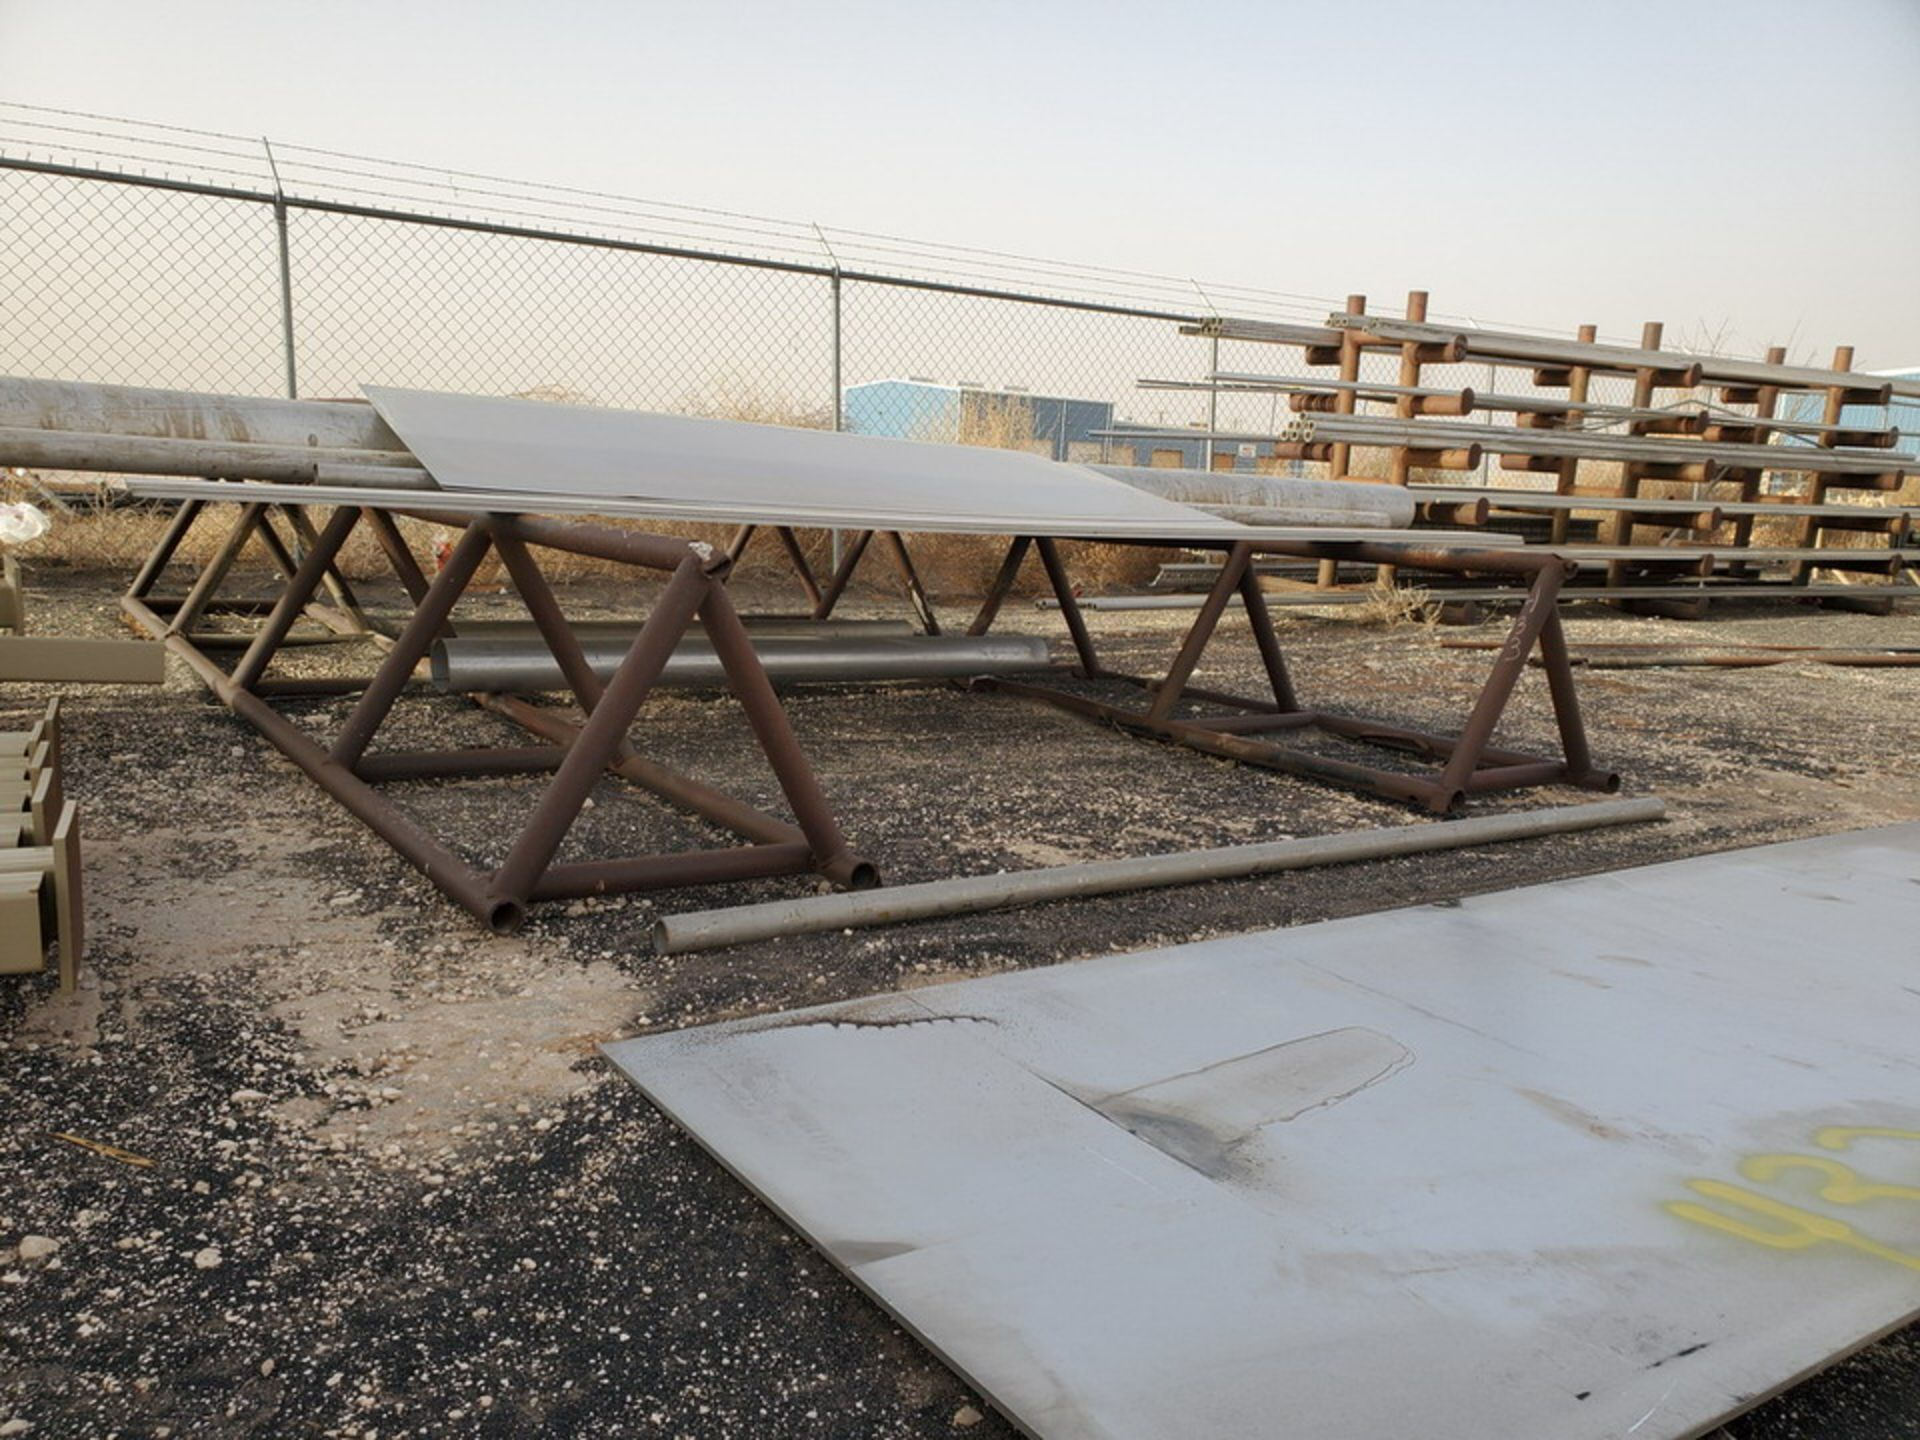 """Pipe Racks 14' x 28"""" (Matl. Excluded) - Image 2 of 3"""